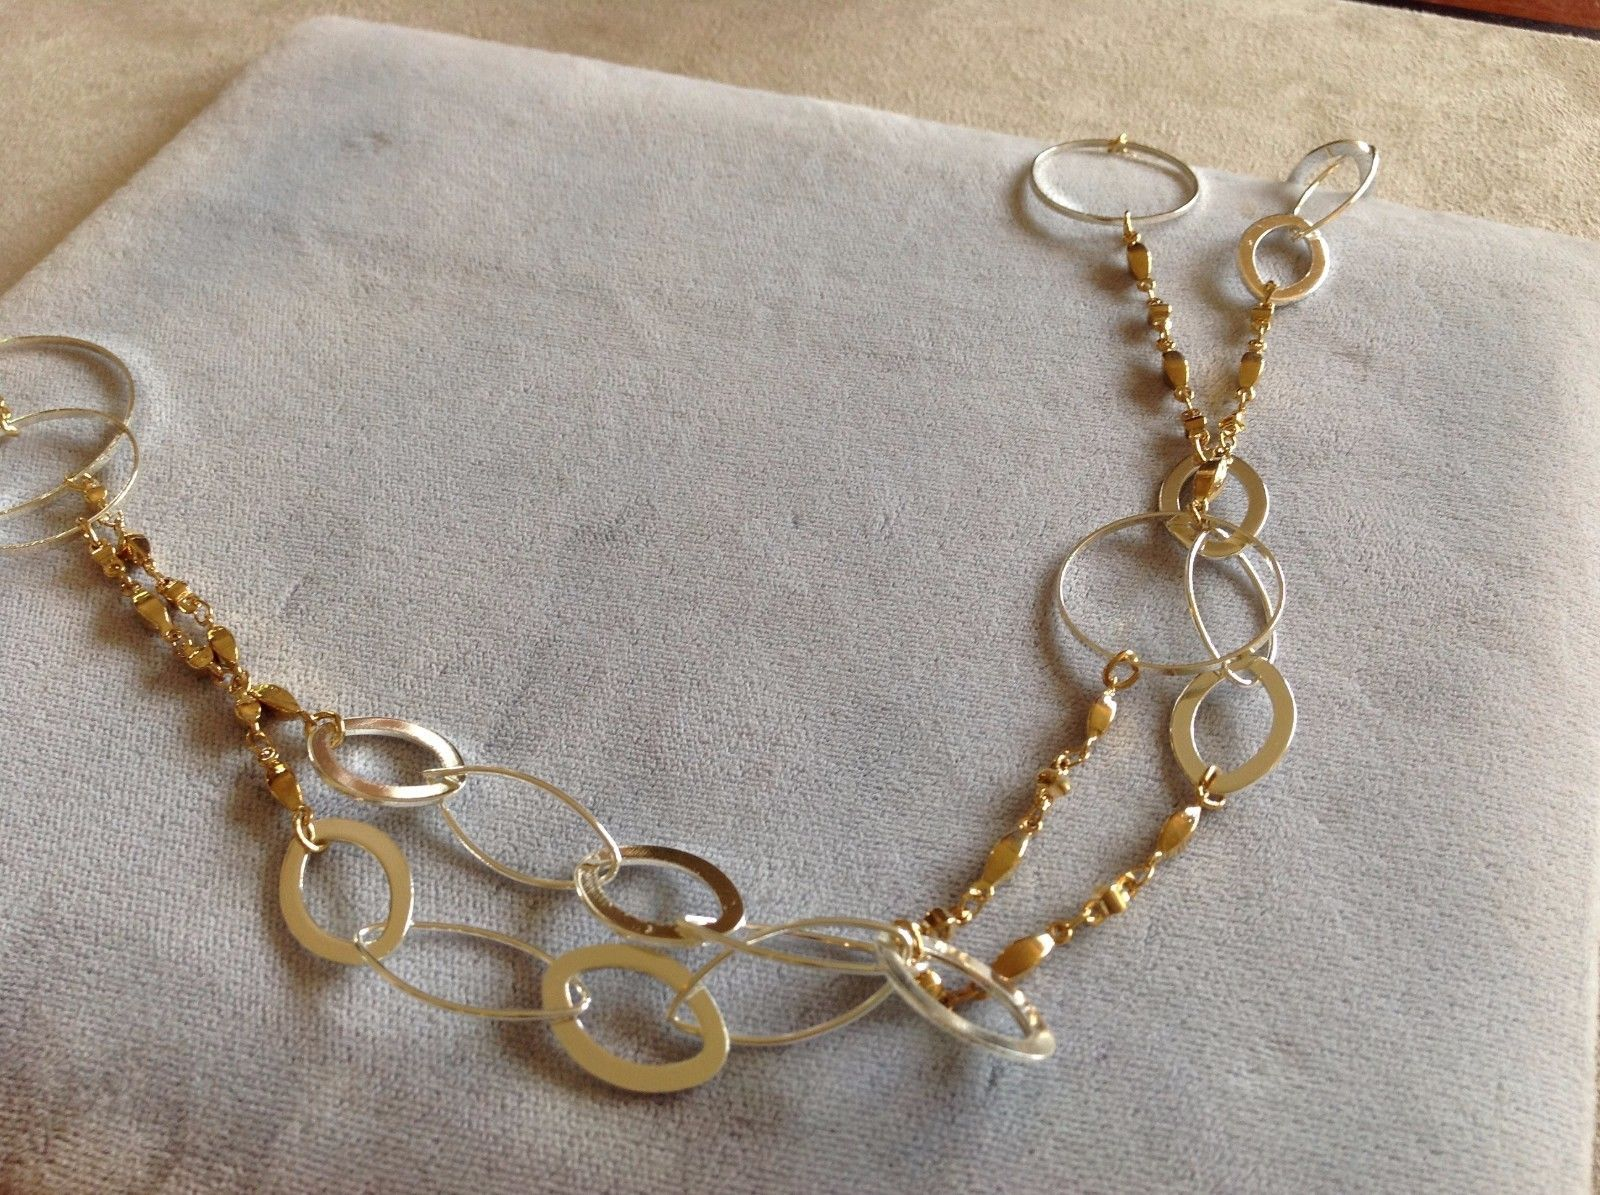 New Allure Gold Toned Chain with Silver Strung Circles and Ovals